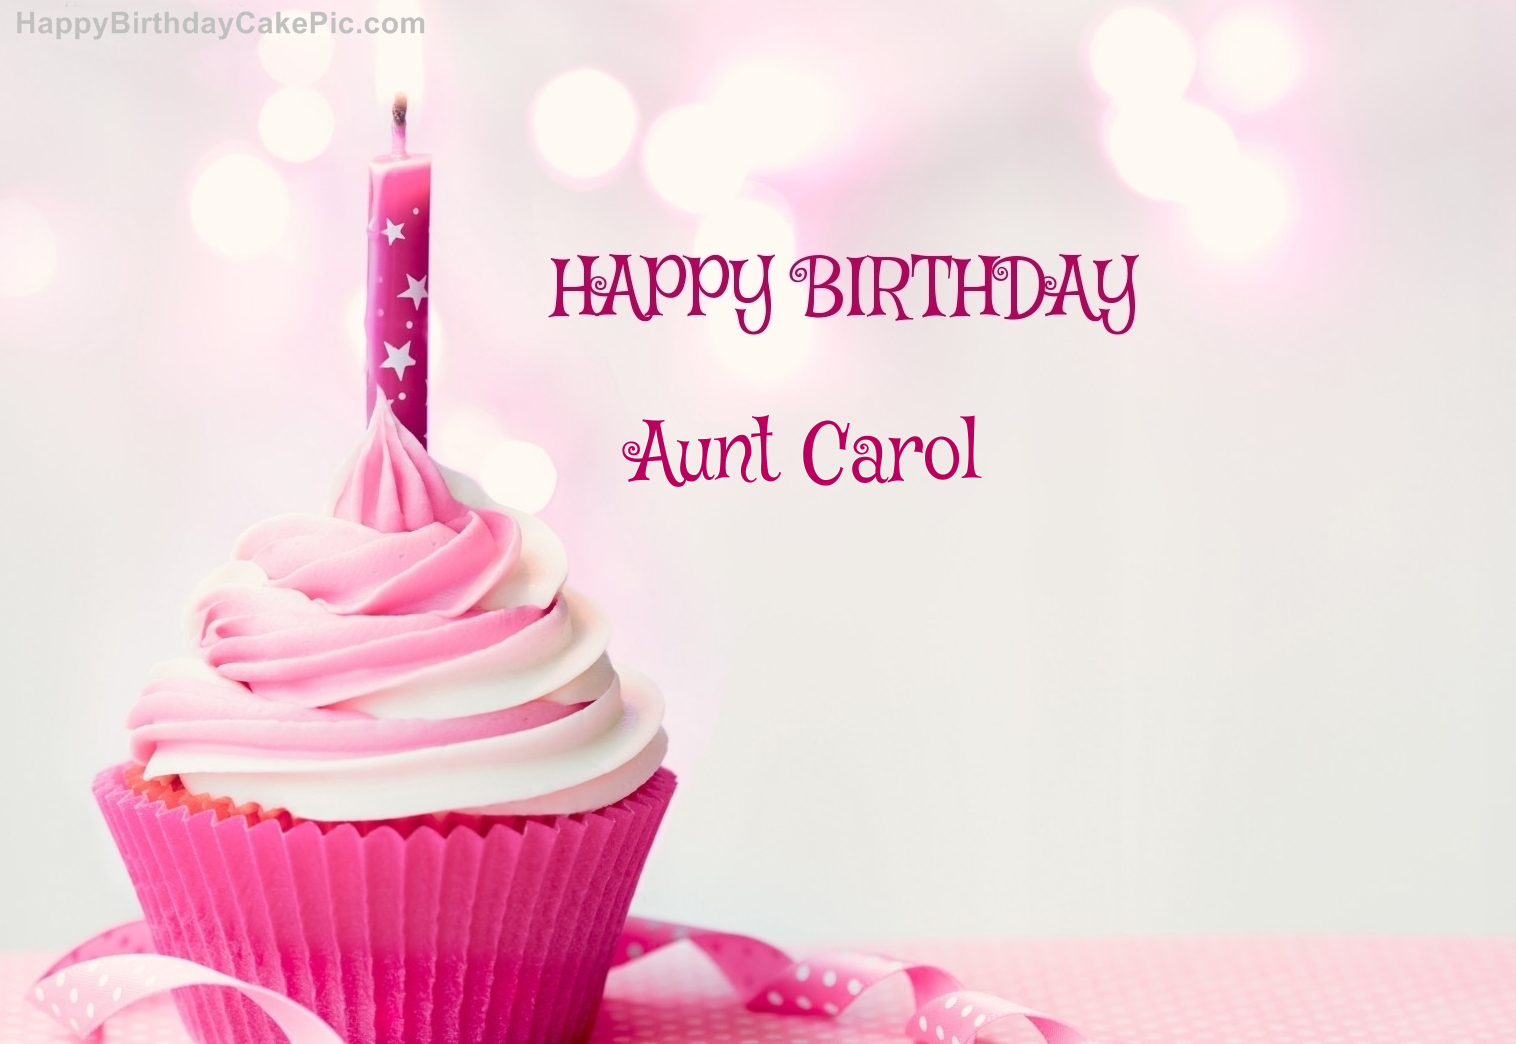 Happy Birthday Cupcake Candle Pink Cake For Aunt Carol